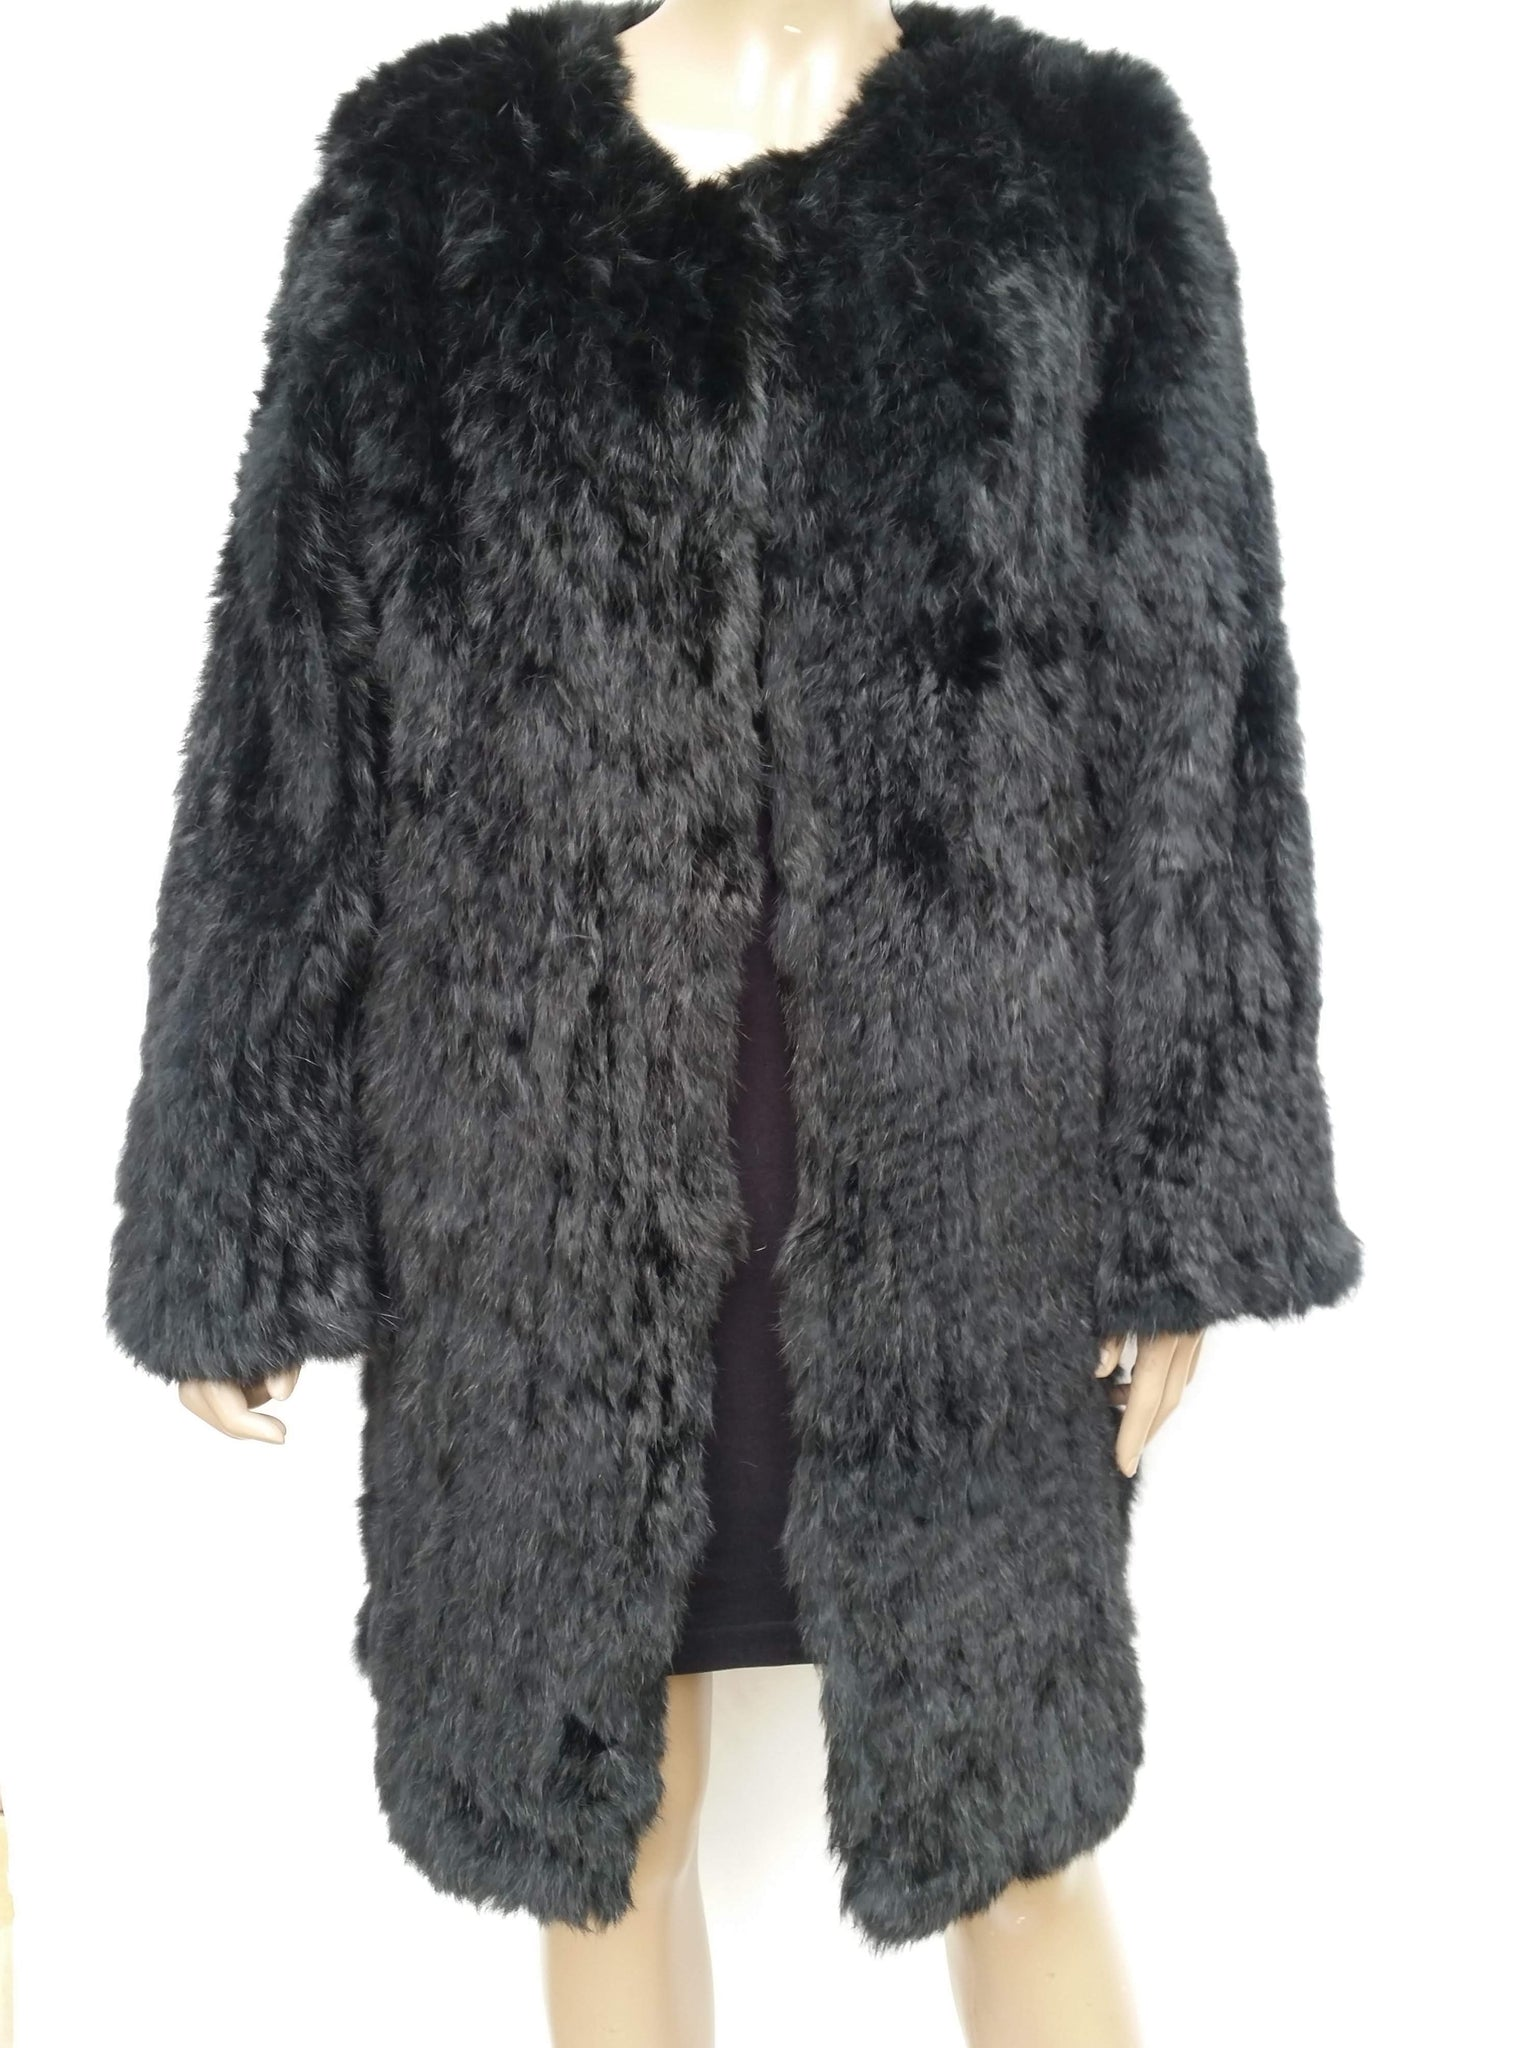 Long Rabbit Fur Coat